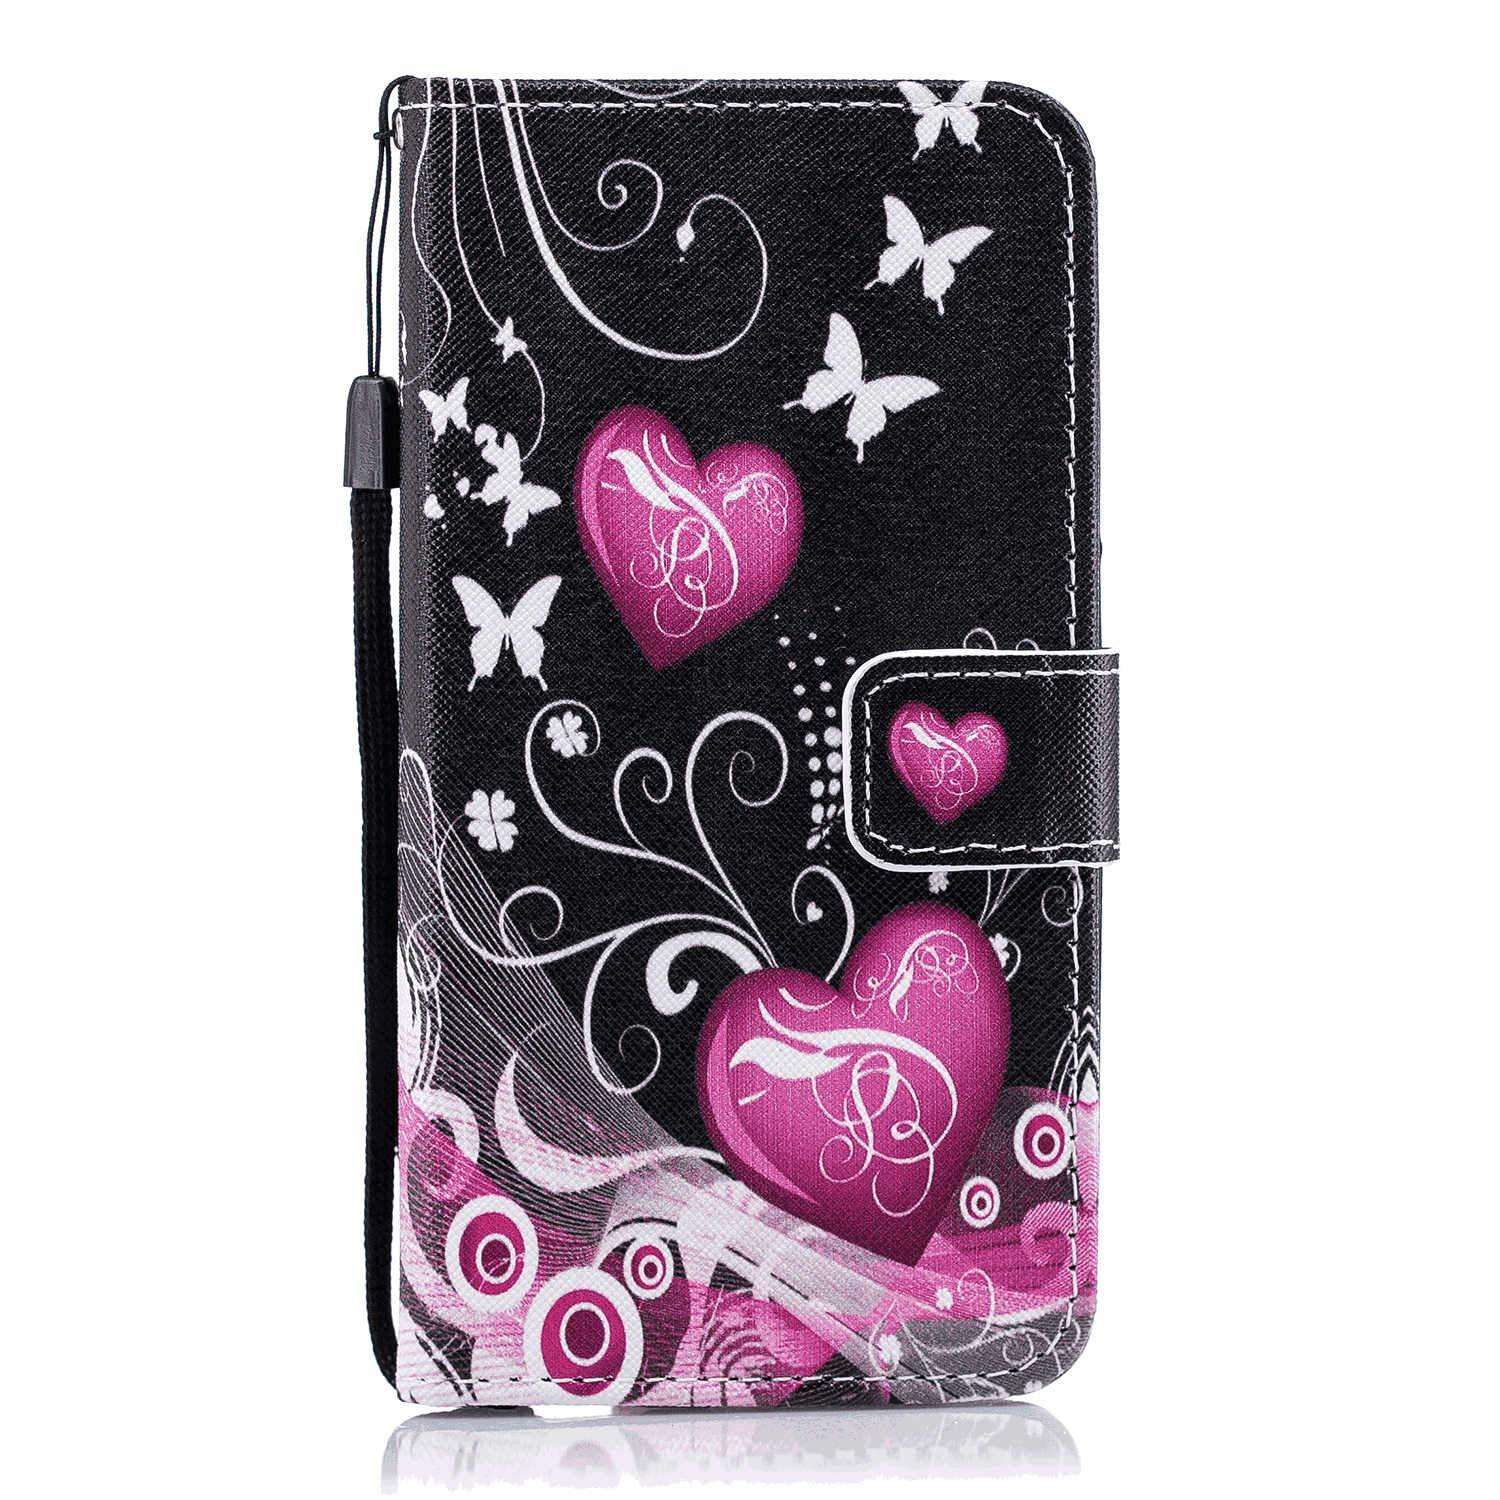 iPhone 8 Flip Case Cover for Leather Extra-Shockproof Business Card Holders Cell Phone case Kickstand Flip Cover